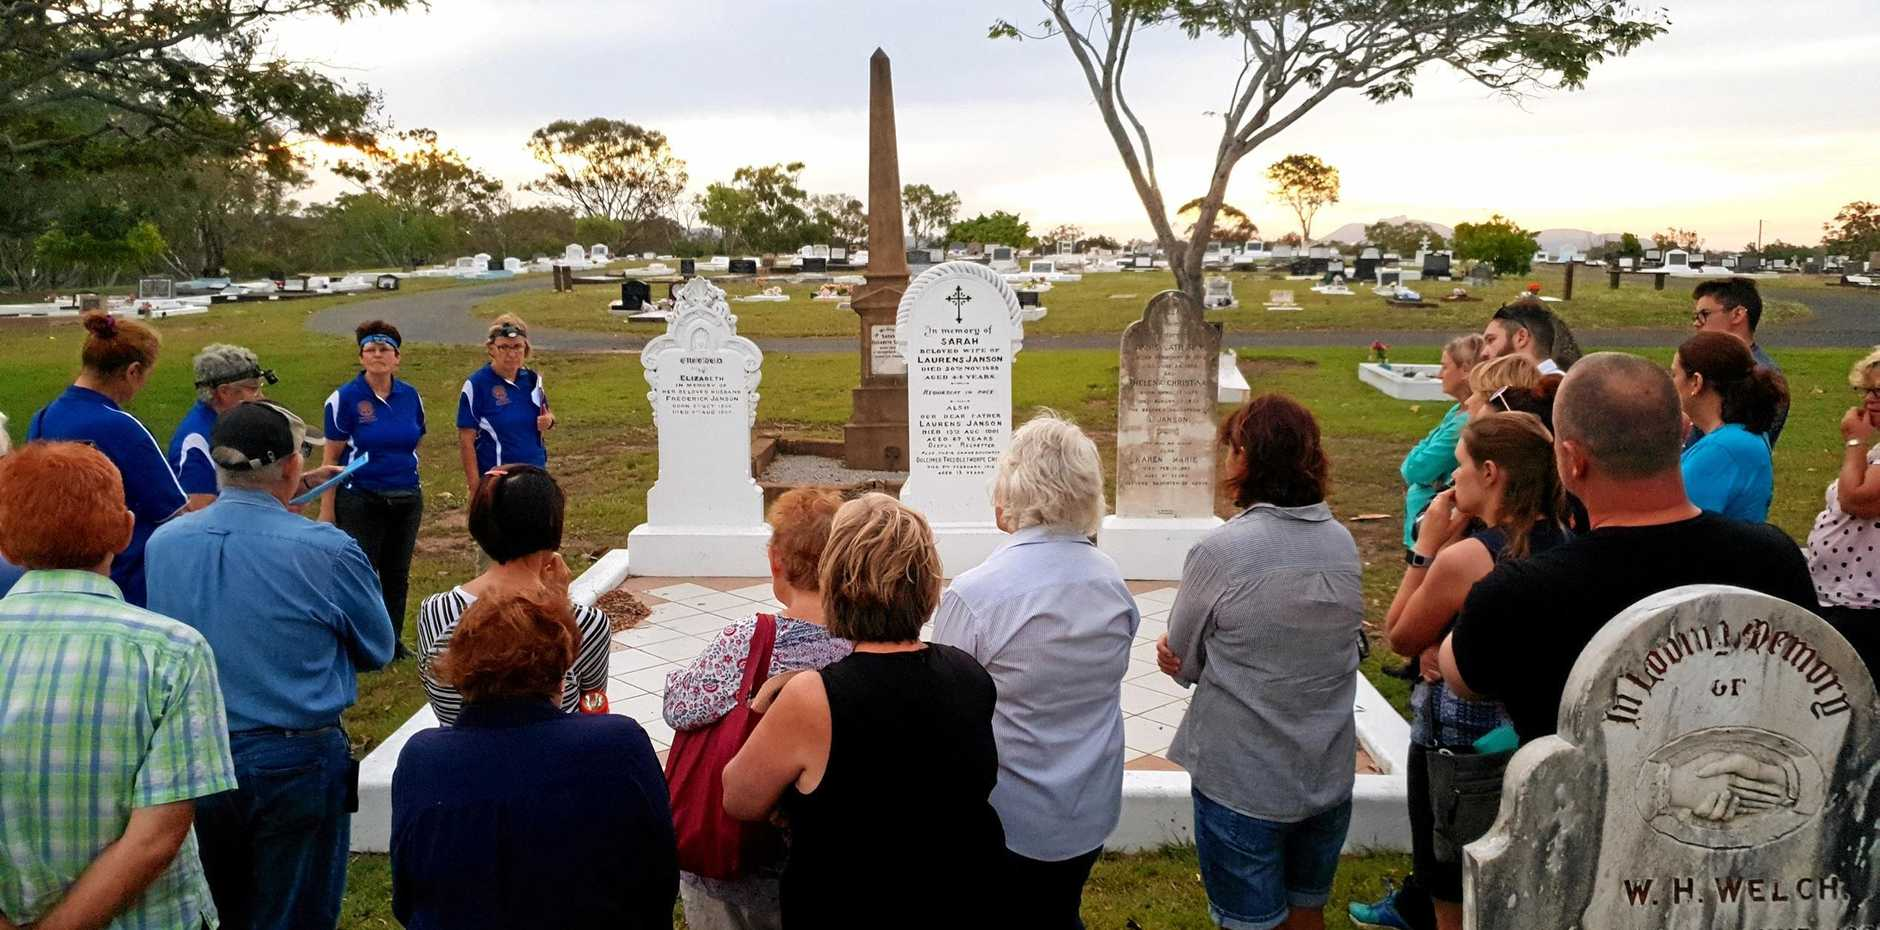 WALK THROUGH TIME: The Genealogical Society conduct sunset cemetery tours throughout the year to share the history of Gladstone's pioneering families.